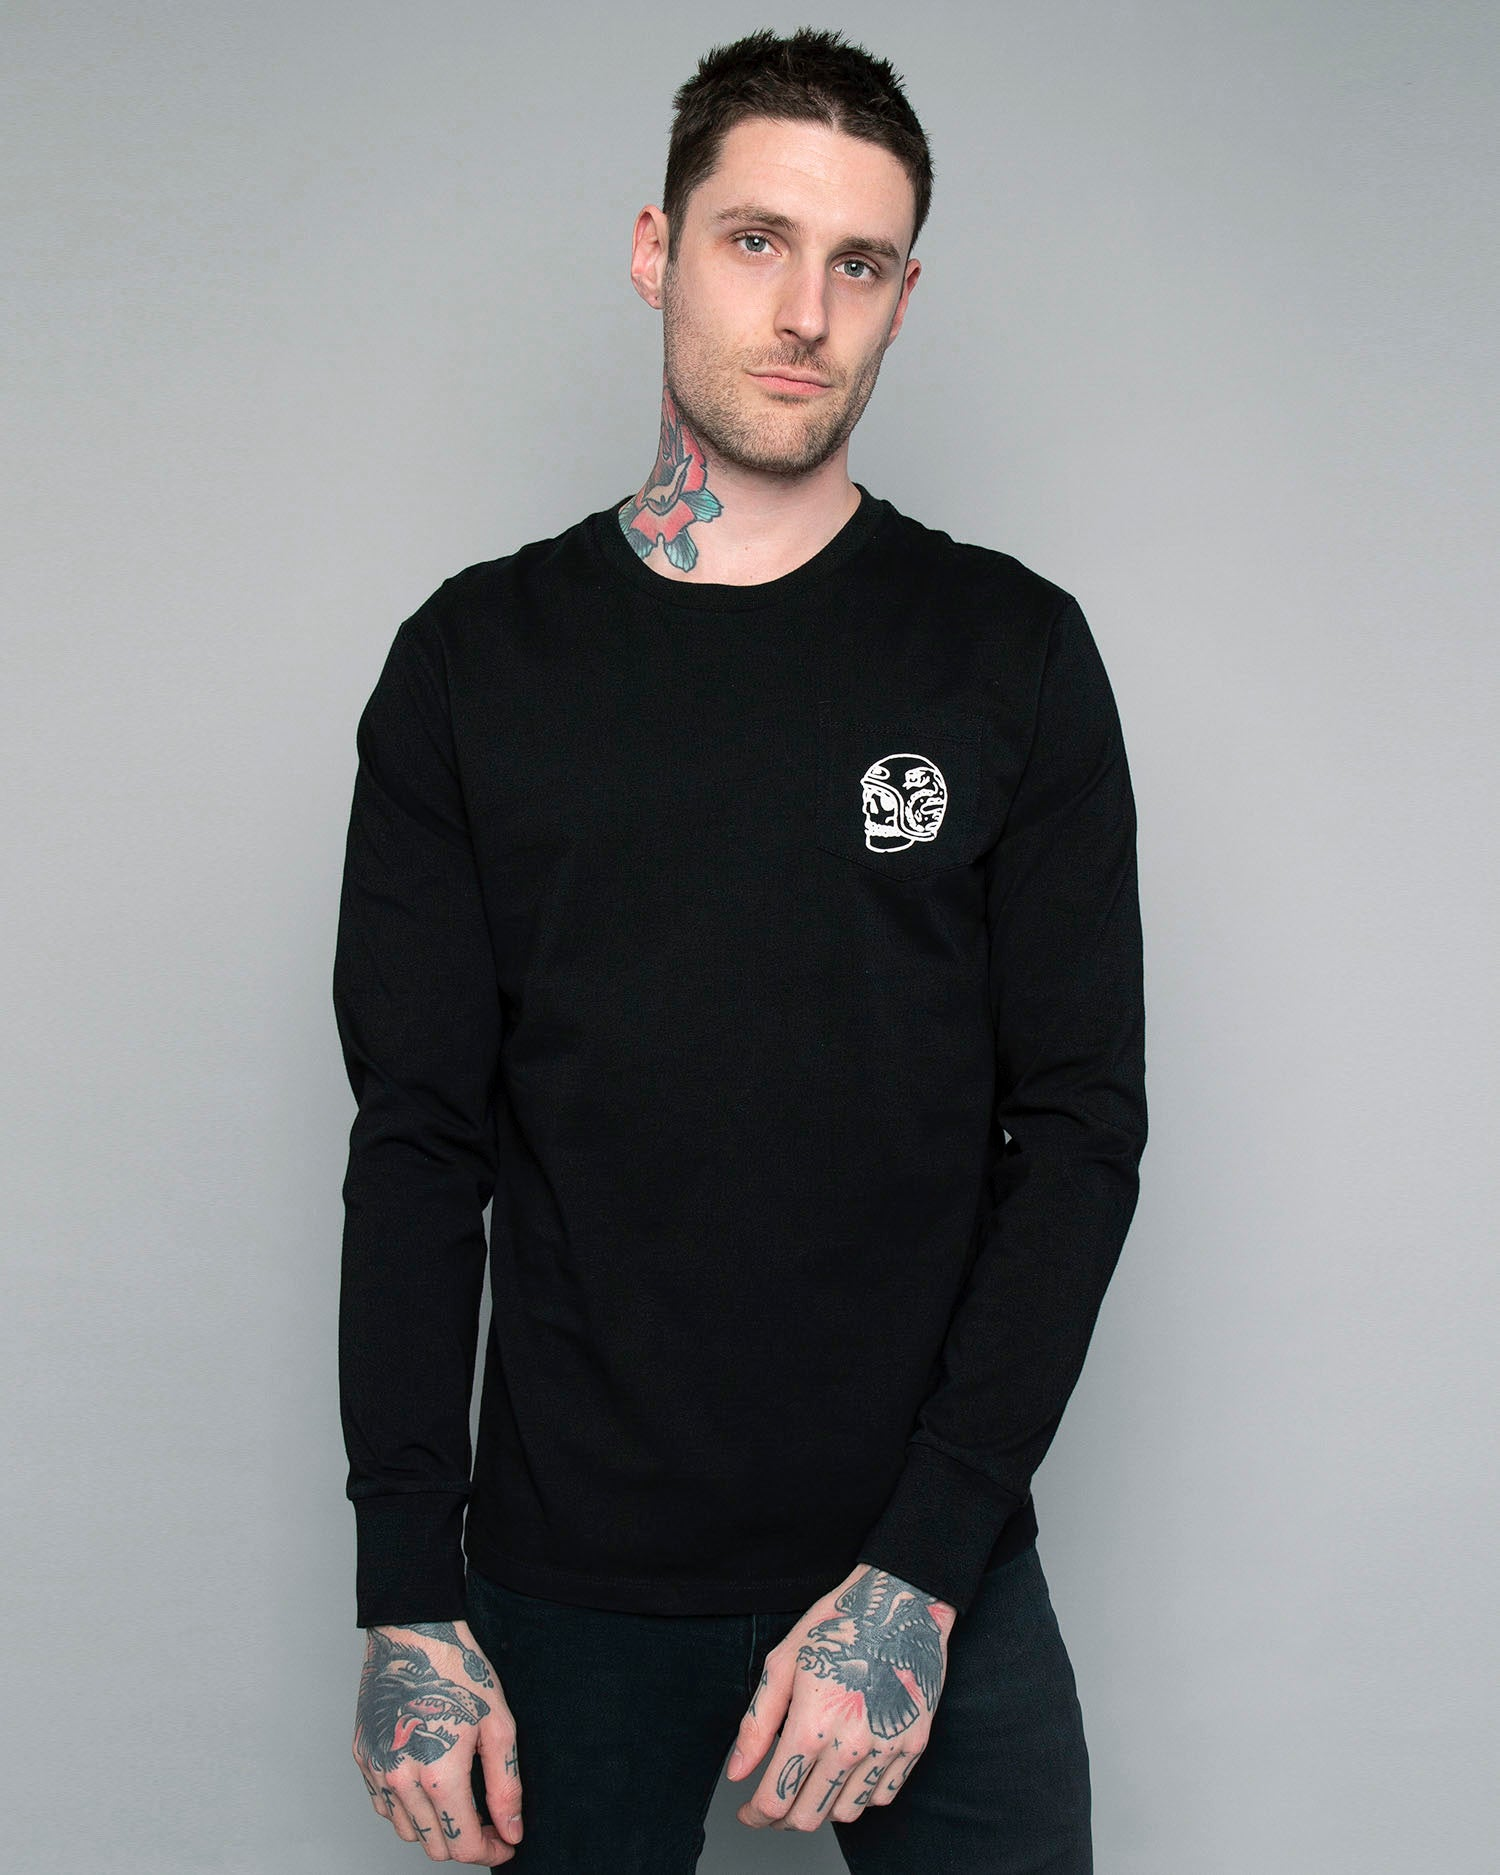 One for the Road Longsleeve black tee